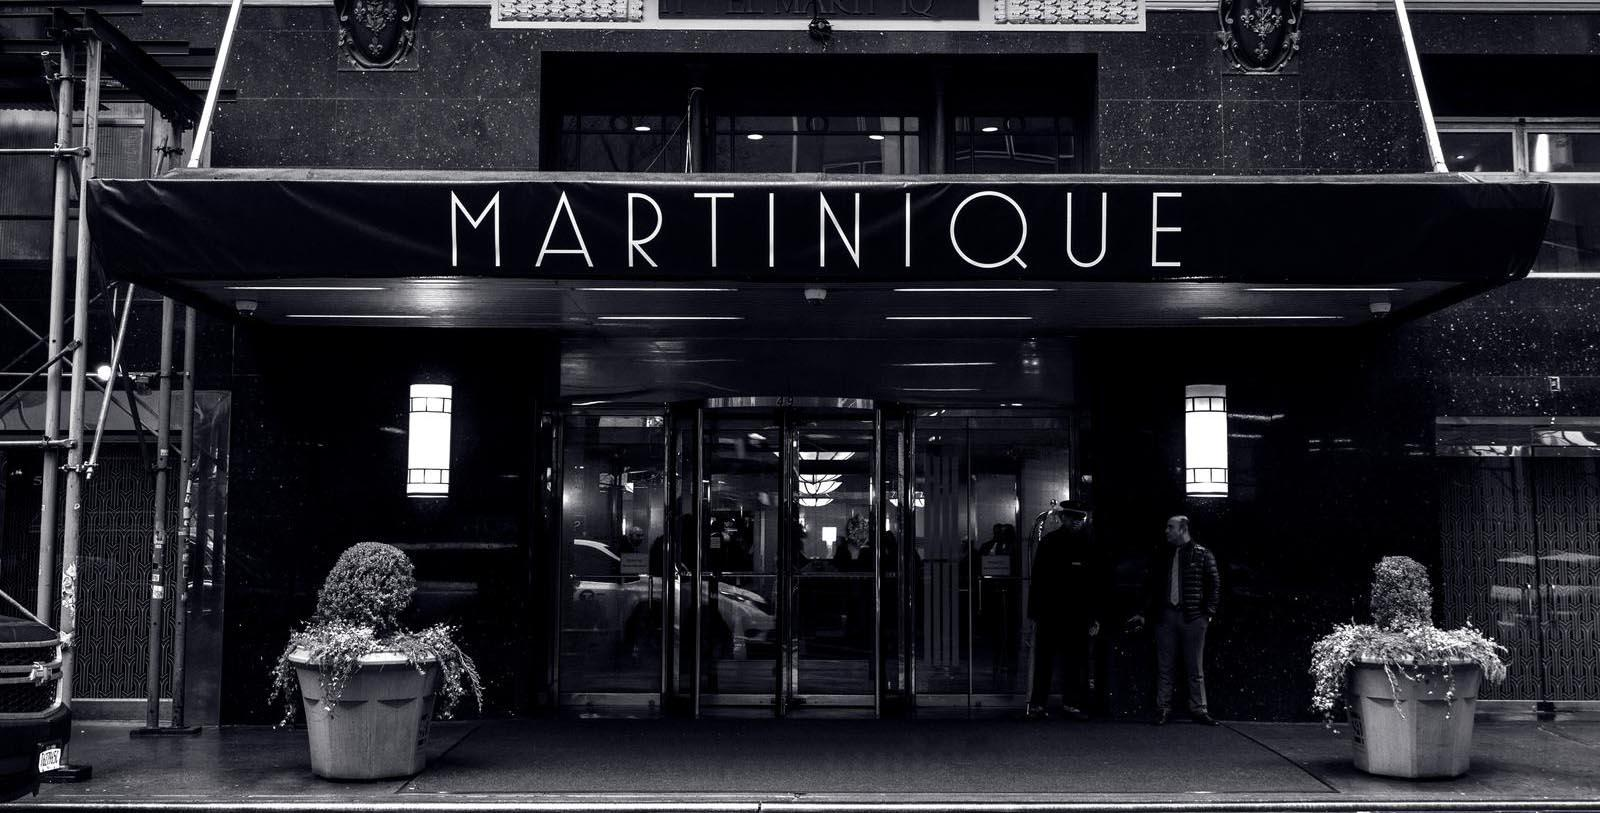 The Martinique New York on Broadway, Curio Collection by Hilton